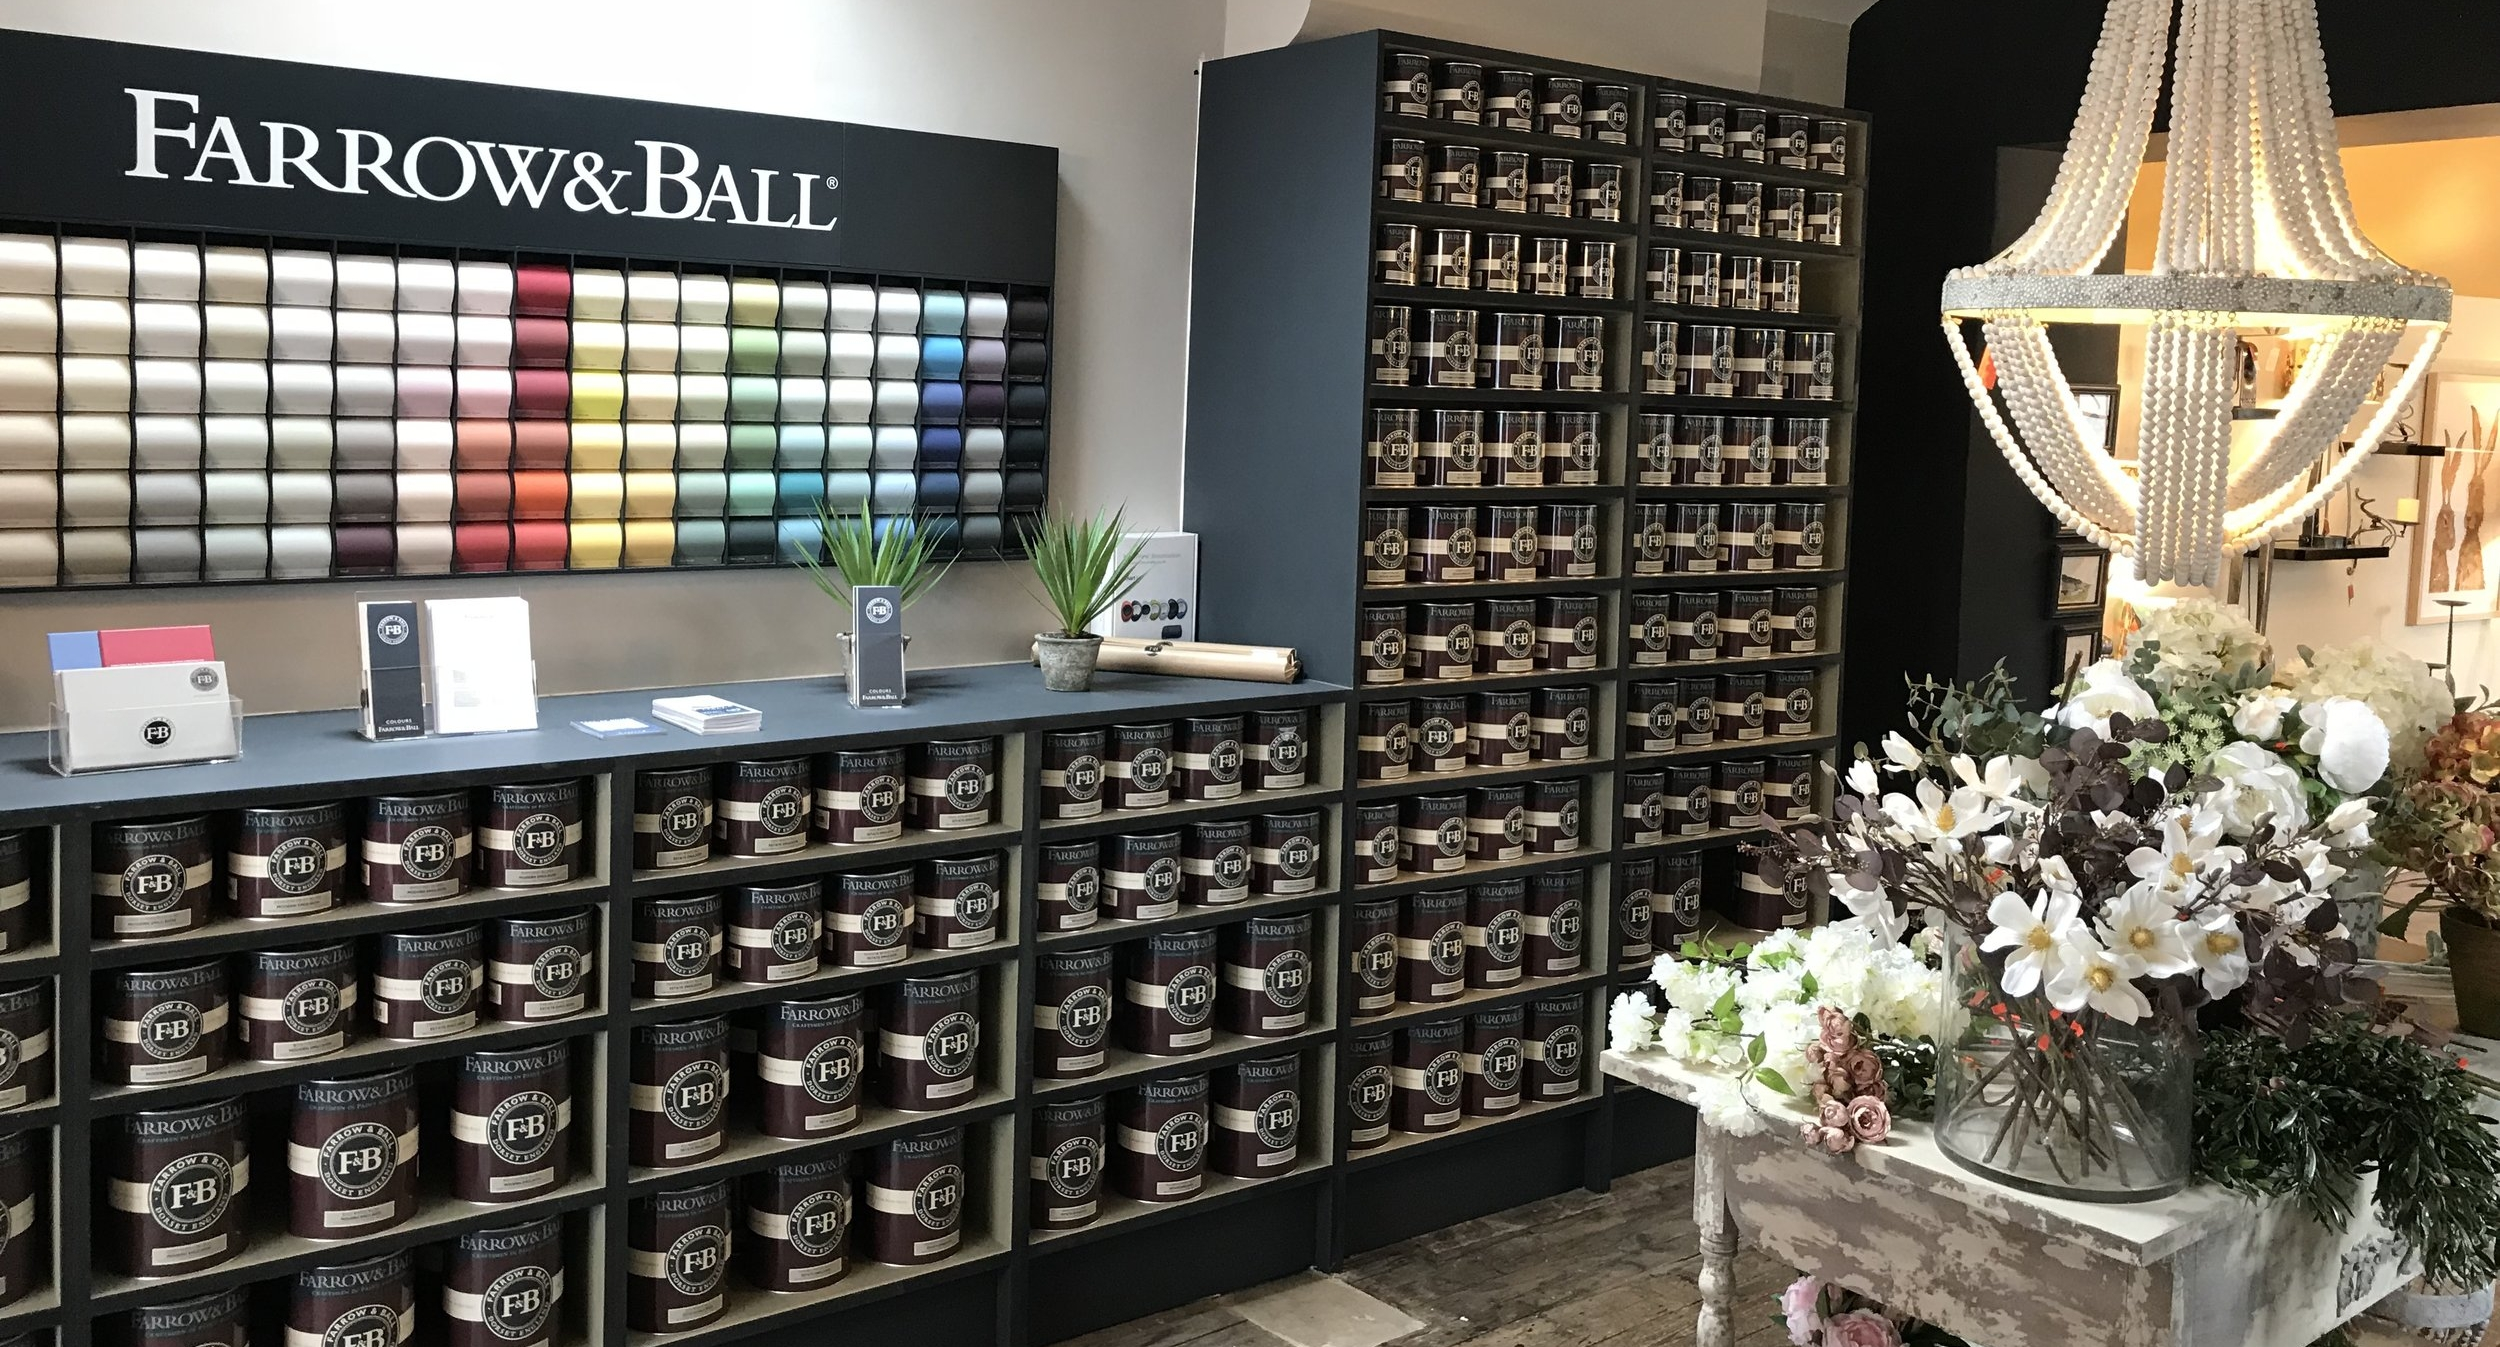 Capella are pleased to be a leading Farrow & Ball Stockist for Yorkshire & The Lake District. - 3 WAYS TO BUY:Pop in to our Settle or Windermere StoresCall us - Settle: 01729 268020 or Windermere: 015394 22022Order Online via our 'Click & Collect' Service below*